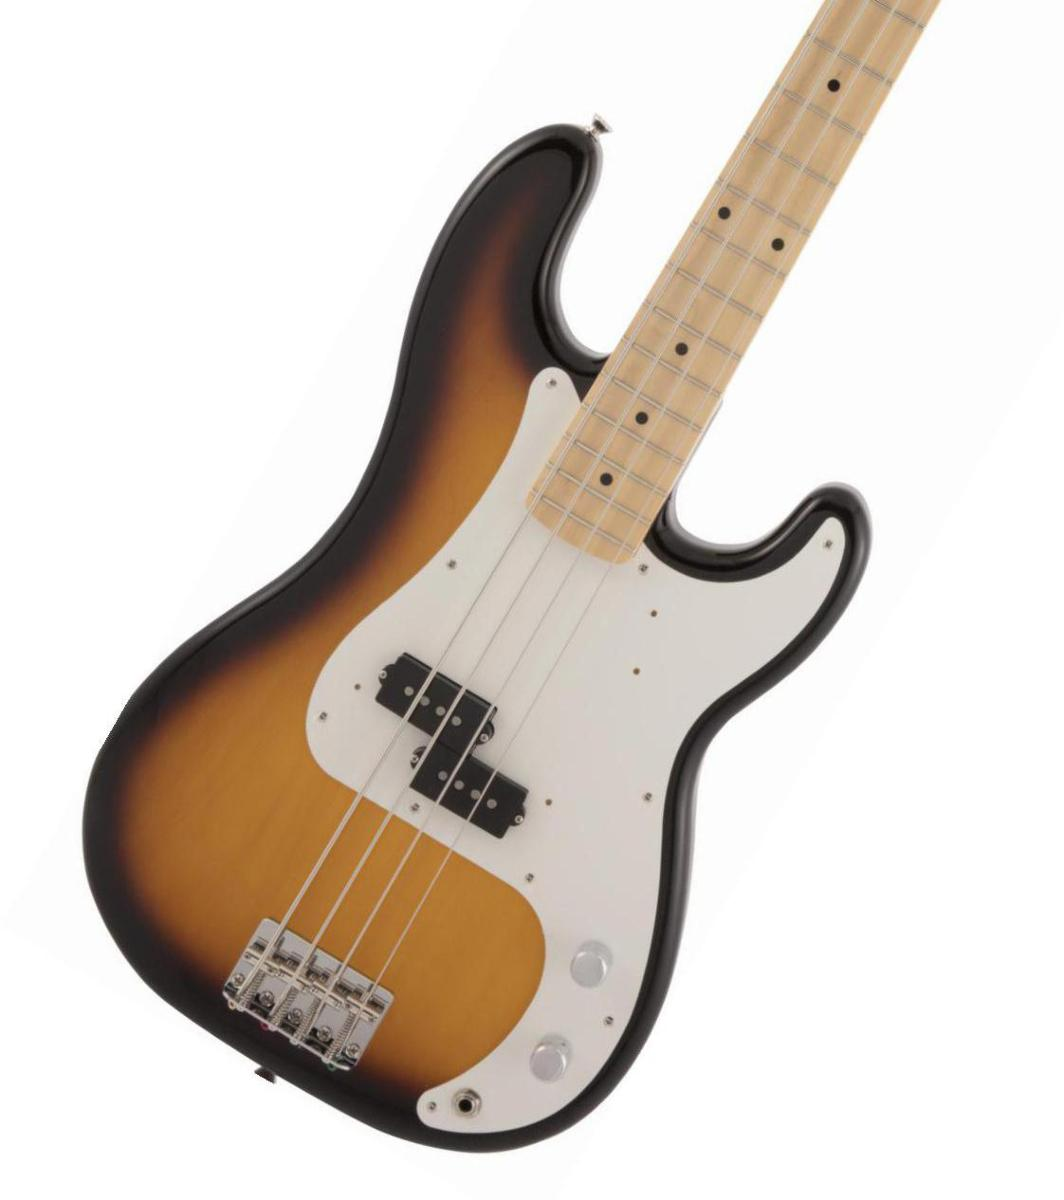 Fender / Made in Japan Traditional 50s Precision Bass Maple Fingerboard 2-Color Sunburst【2020 NEW MODEL】《純正ケーブル&ピック1ダースプレゼント!/+661944400》